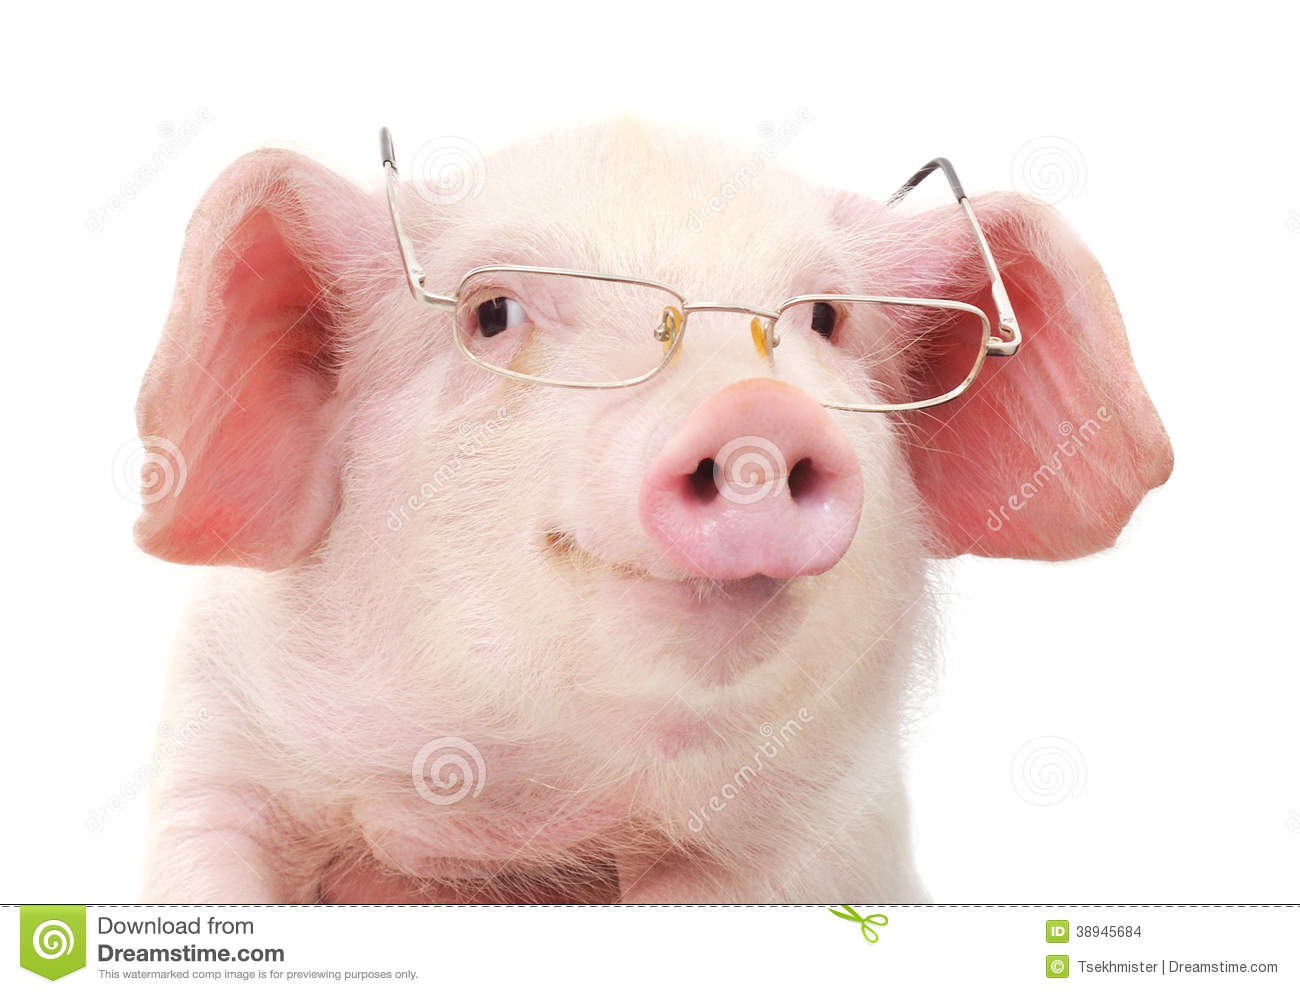 Cute Piglet With Glasses